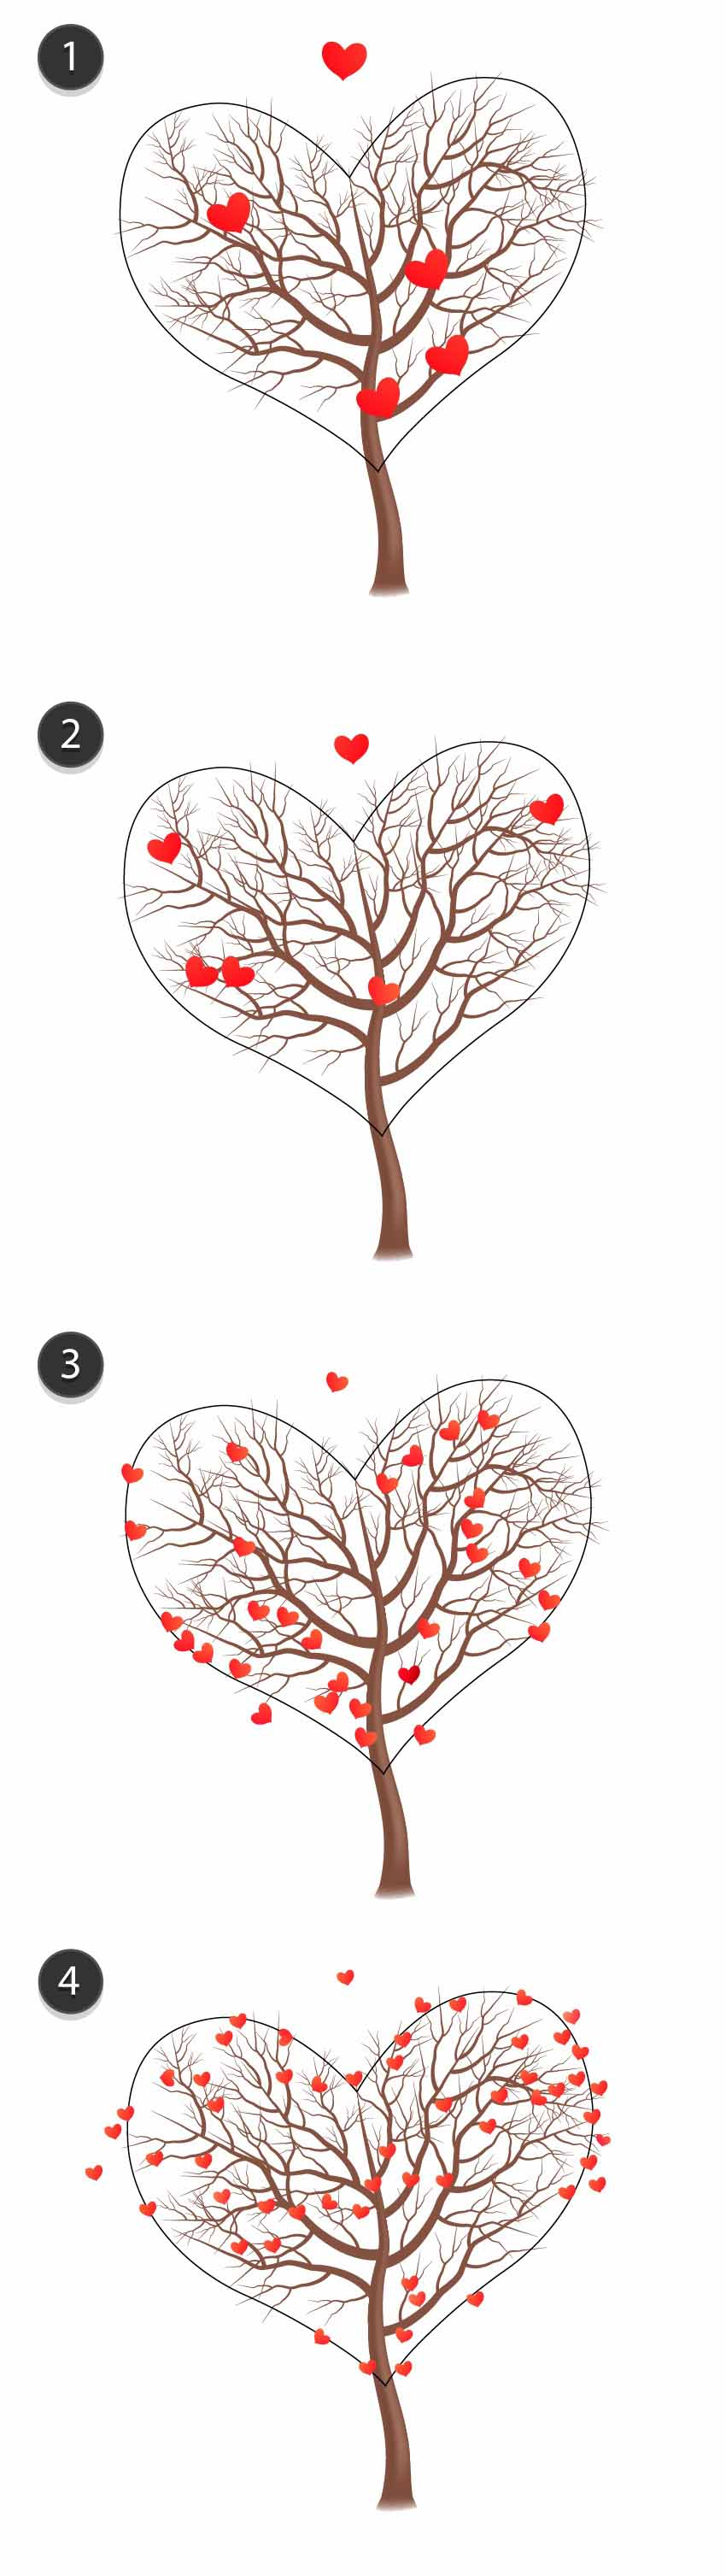 Four groups of hearts the smaller they are the more of them are placed onto the tree